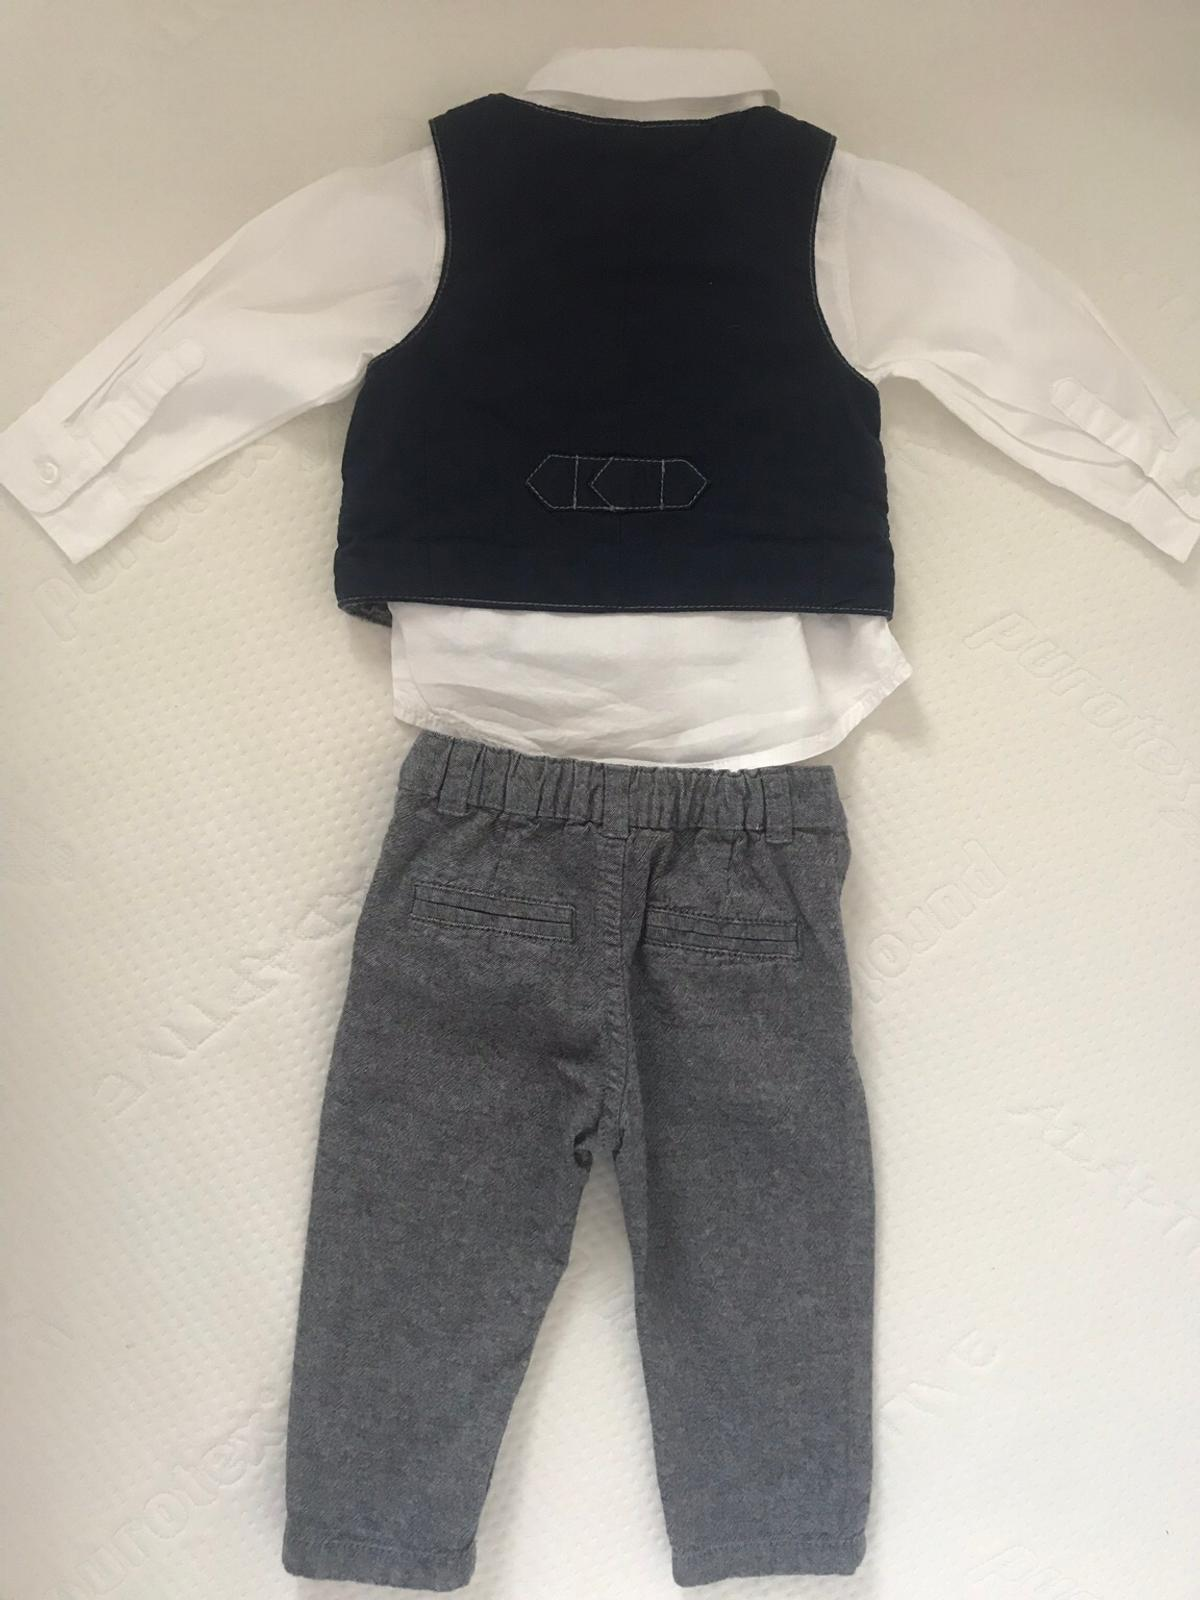 Baby boys three piece outfit Size 6-9months Very cute, only worn once so in perfect condition Trousers, waistcoat and shirt Trousers have adjustable elastic and button inside to adjust to babies waist Waistcoat has a sewn in handkerchief in navy blue to match navy blue on the back of waistcoat Shirt is plain white with collar buttons From F&F Signature Collection from Southwater Happy to post if buyer pays postage of £3.10  Take a look at my other items happy to combine postage costs 👍🏻